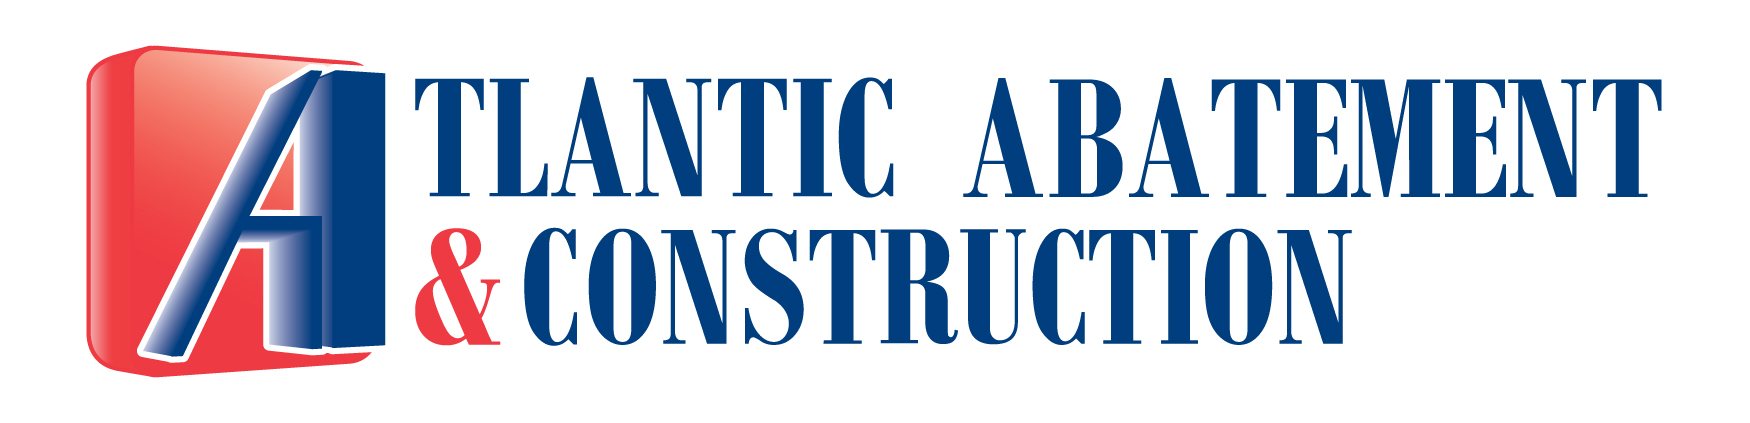 Atlantic Abatement and Construction